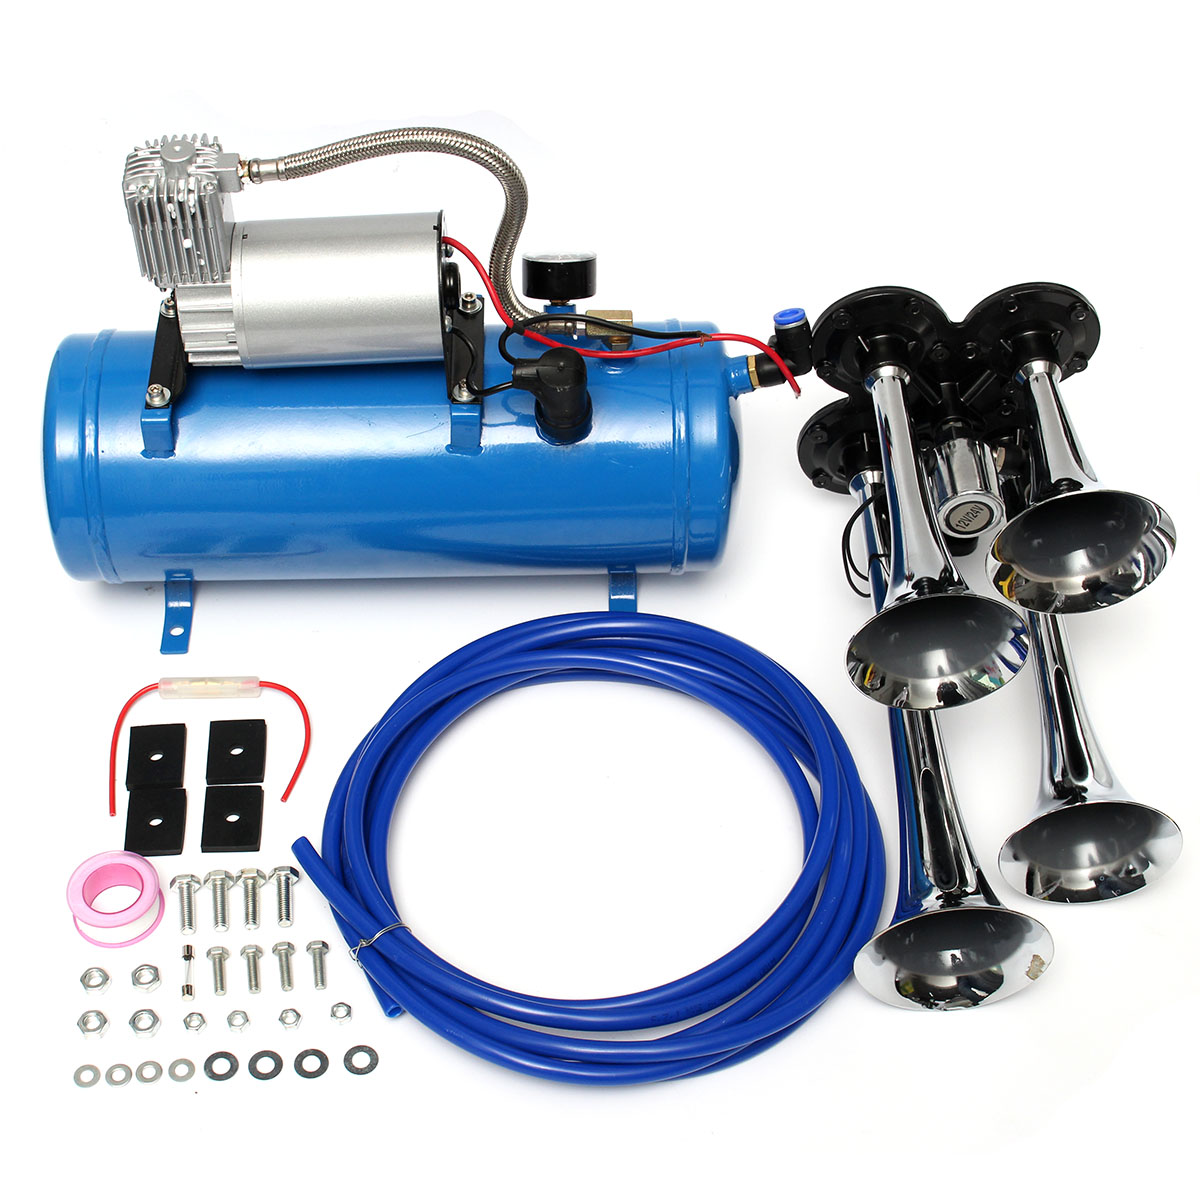 4 Trumpet Train Vehicle Air Horn 12V/24V Compressor Tubing 150dB 120 PSI Kit Car Truck Boat